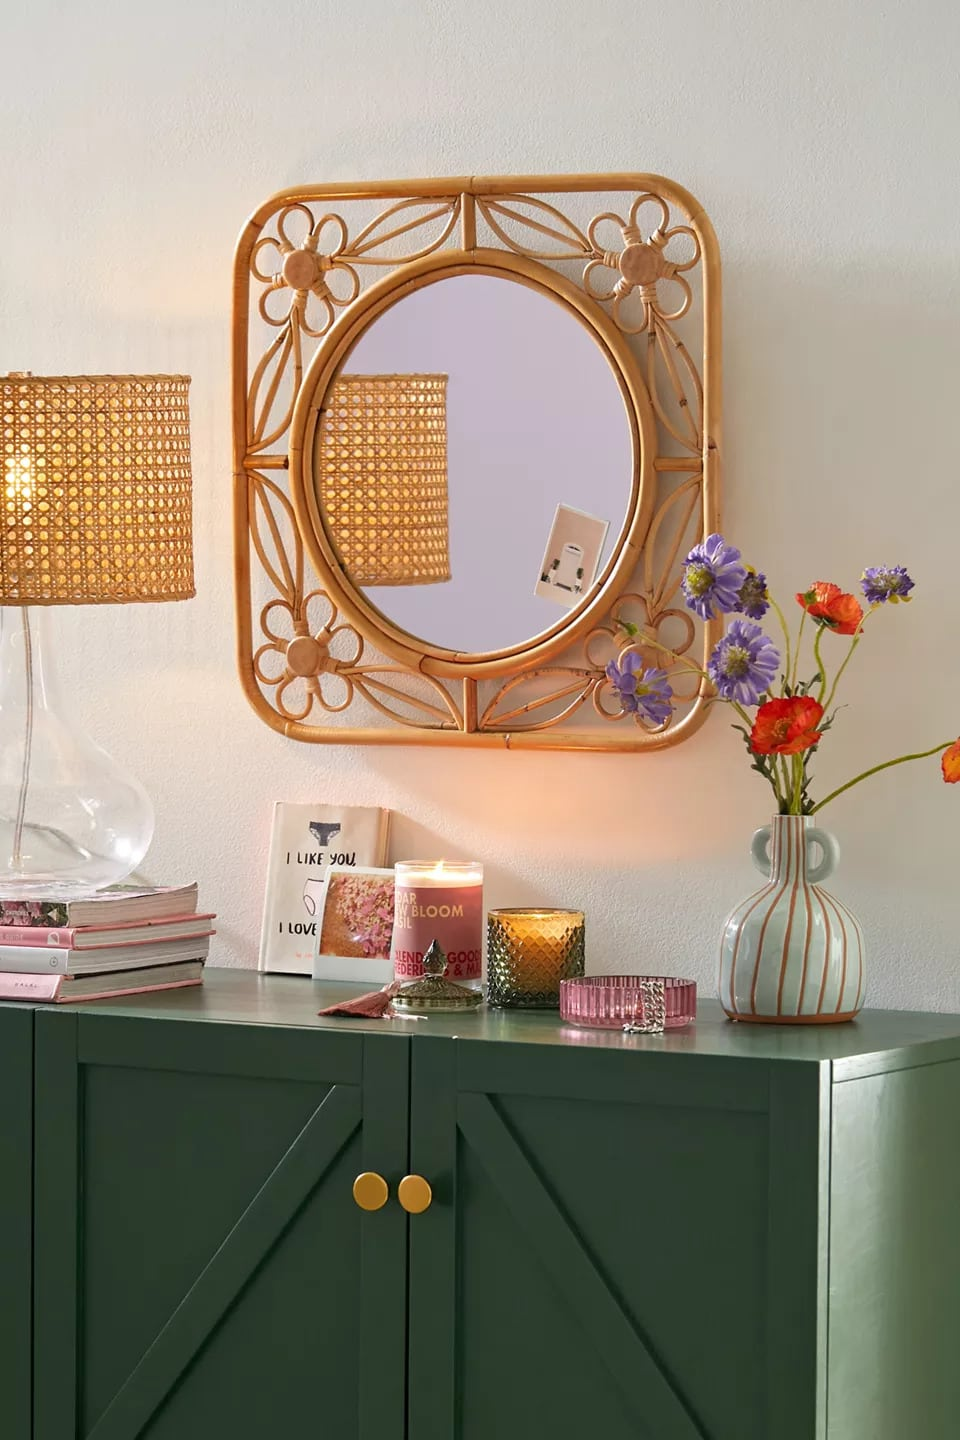 Use a Floral Wall Mirror for a Natural Look